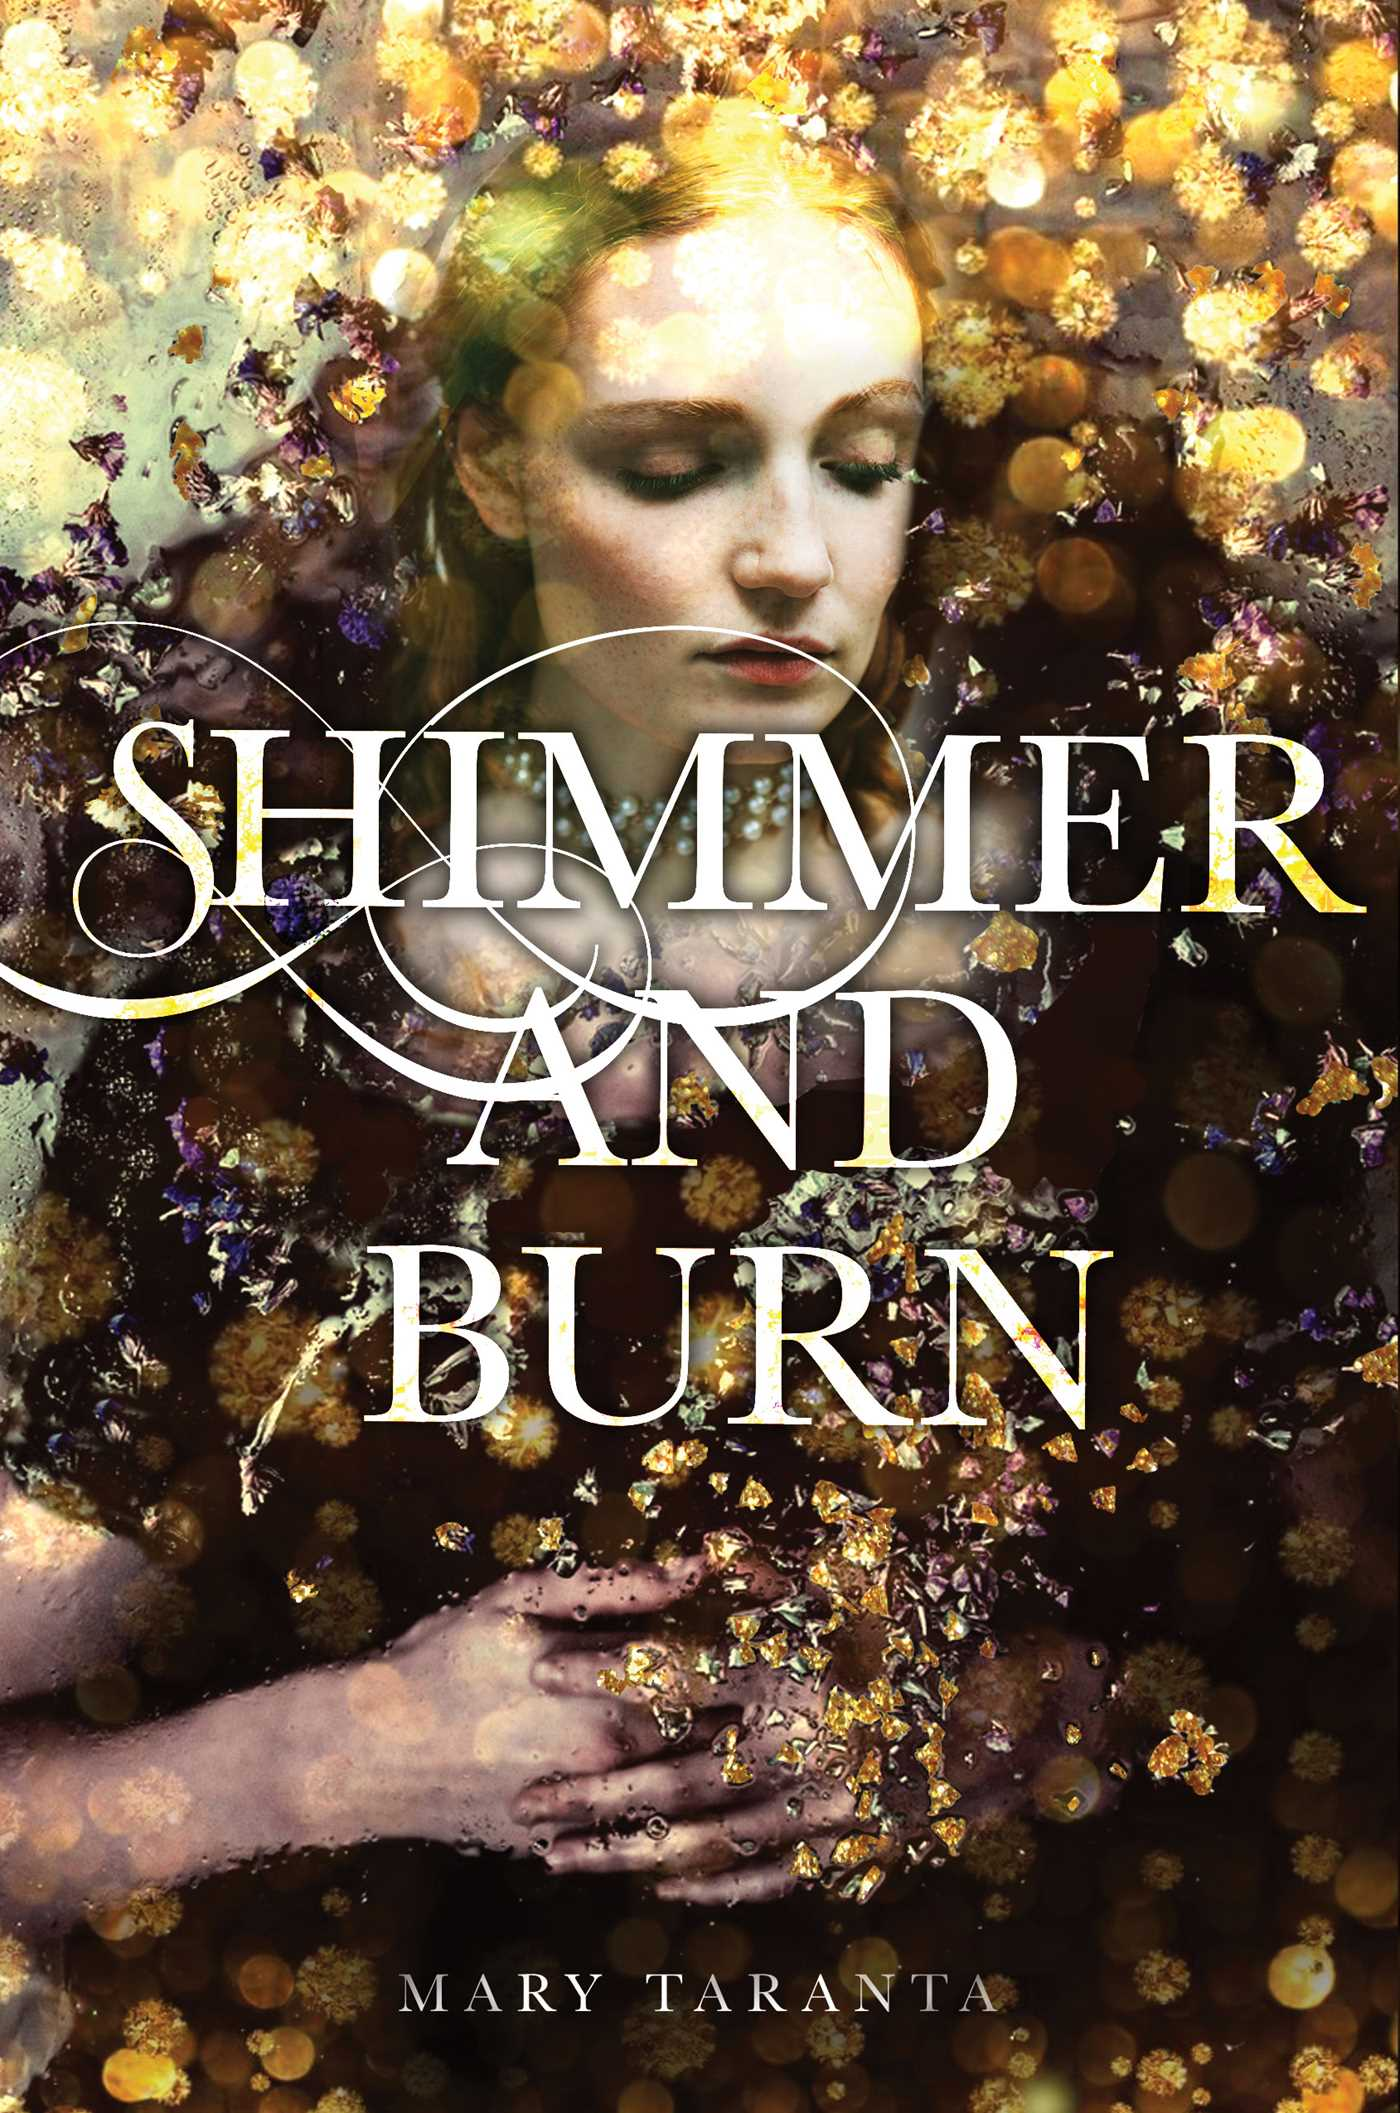 Review – Shimmer and Burn by Mary Taranta